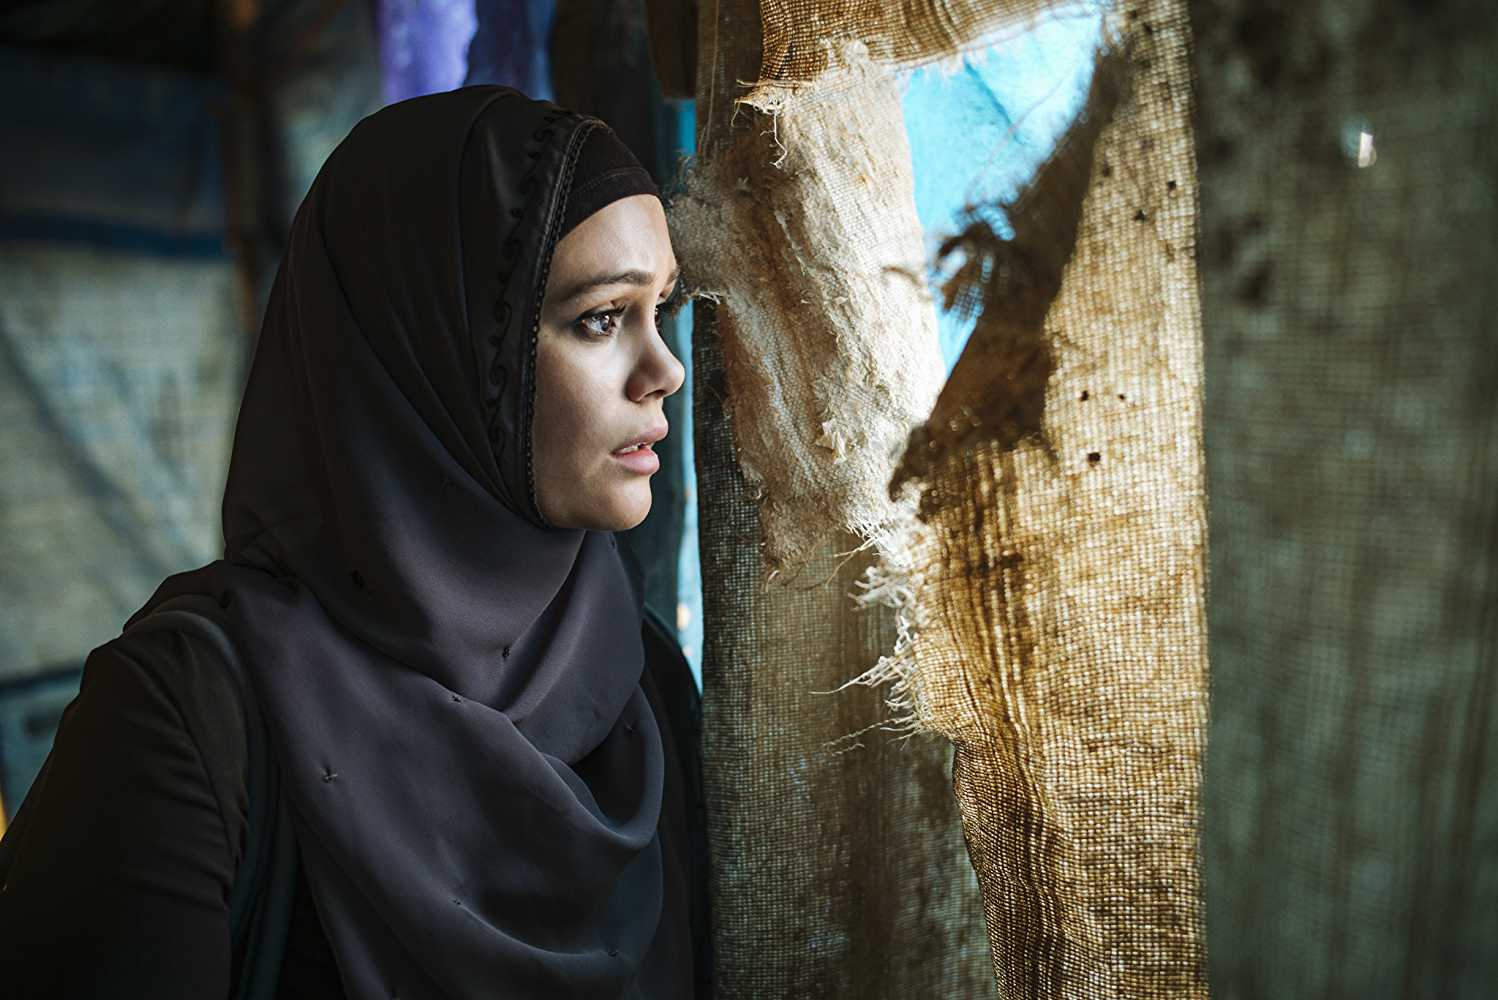 Hanin's character is a deviation from the stereotypical projection of Saudi women. (IMDb)